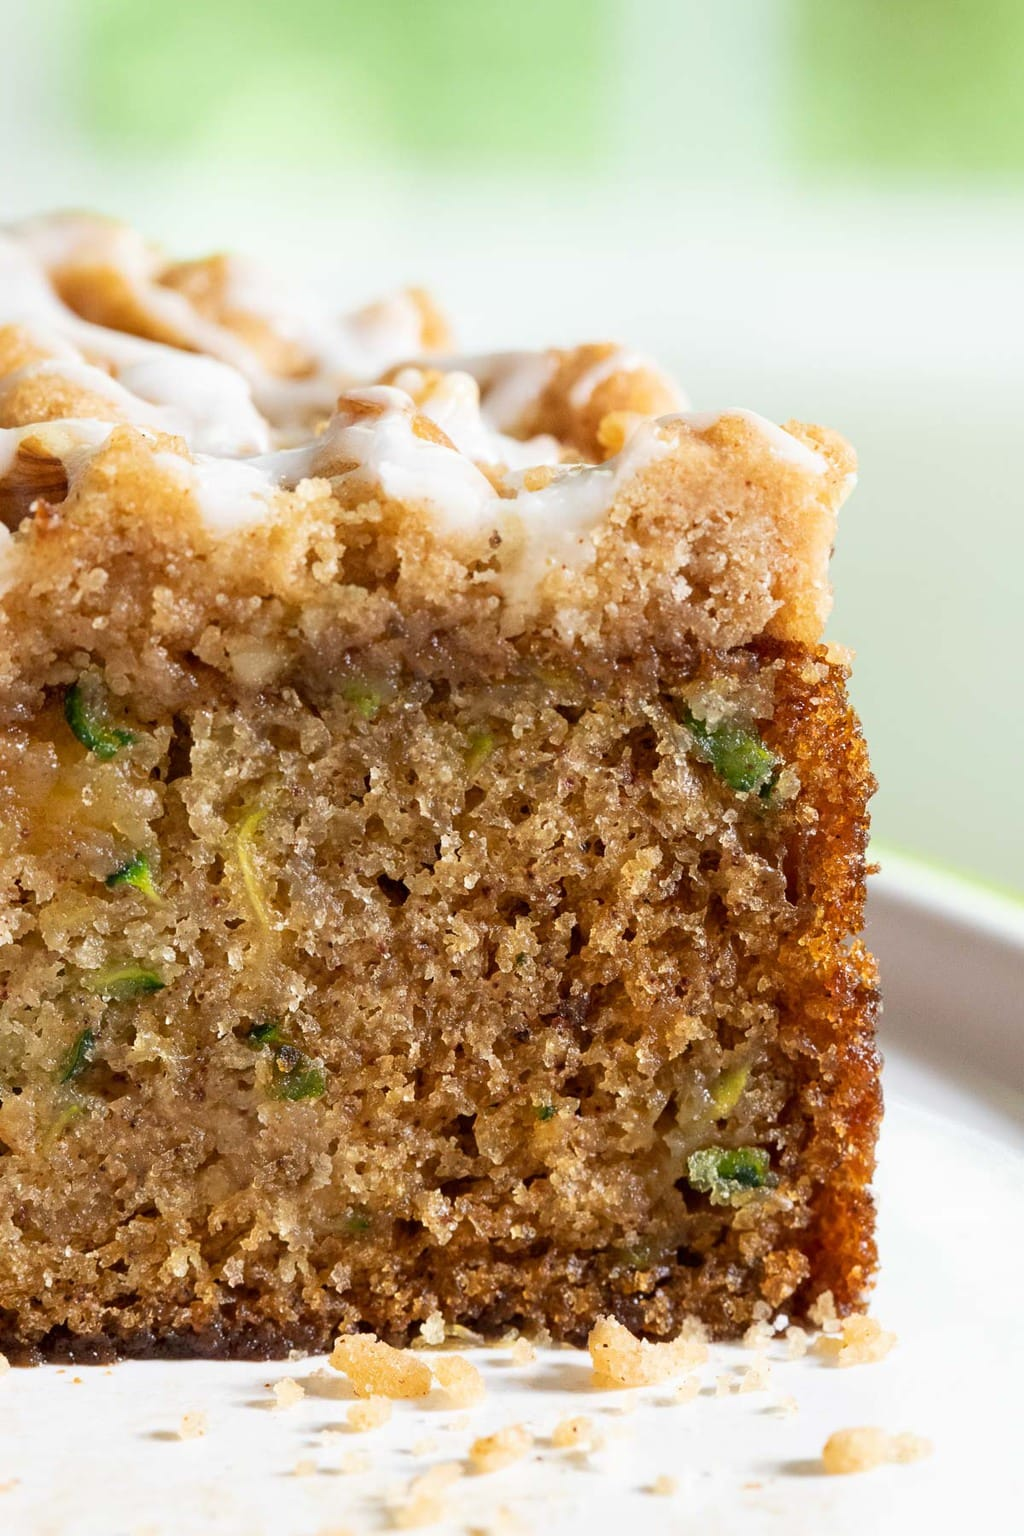 Extreme closeup vertical photo of the inside of an Easy Zucchini Crumb Cake.